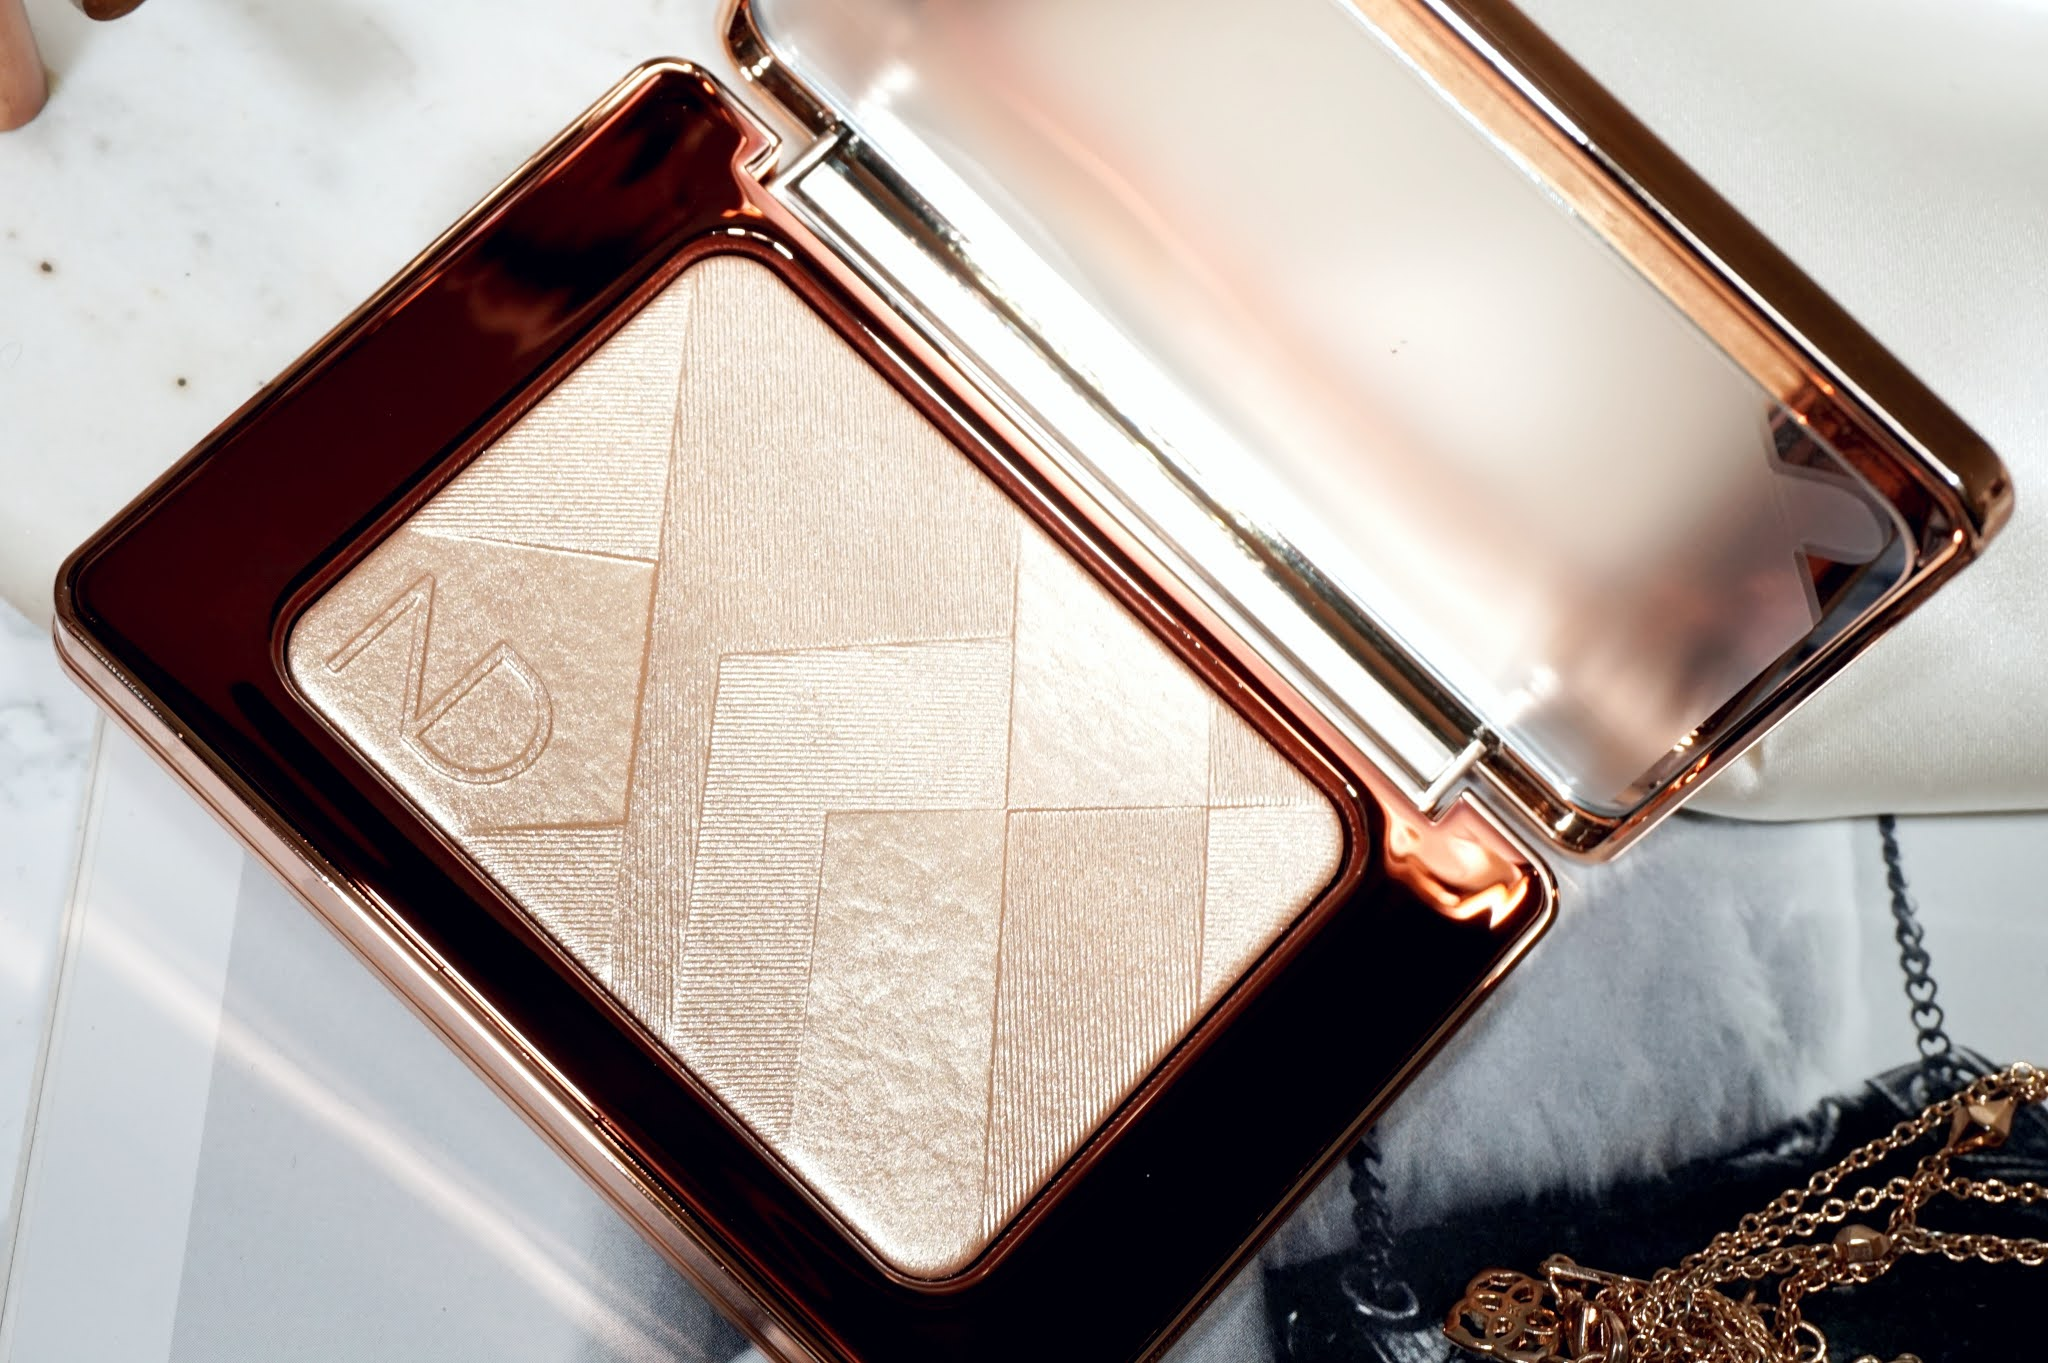 Natasha Denona I Need A Nude Glow Highlighter Review and Swatches